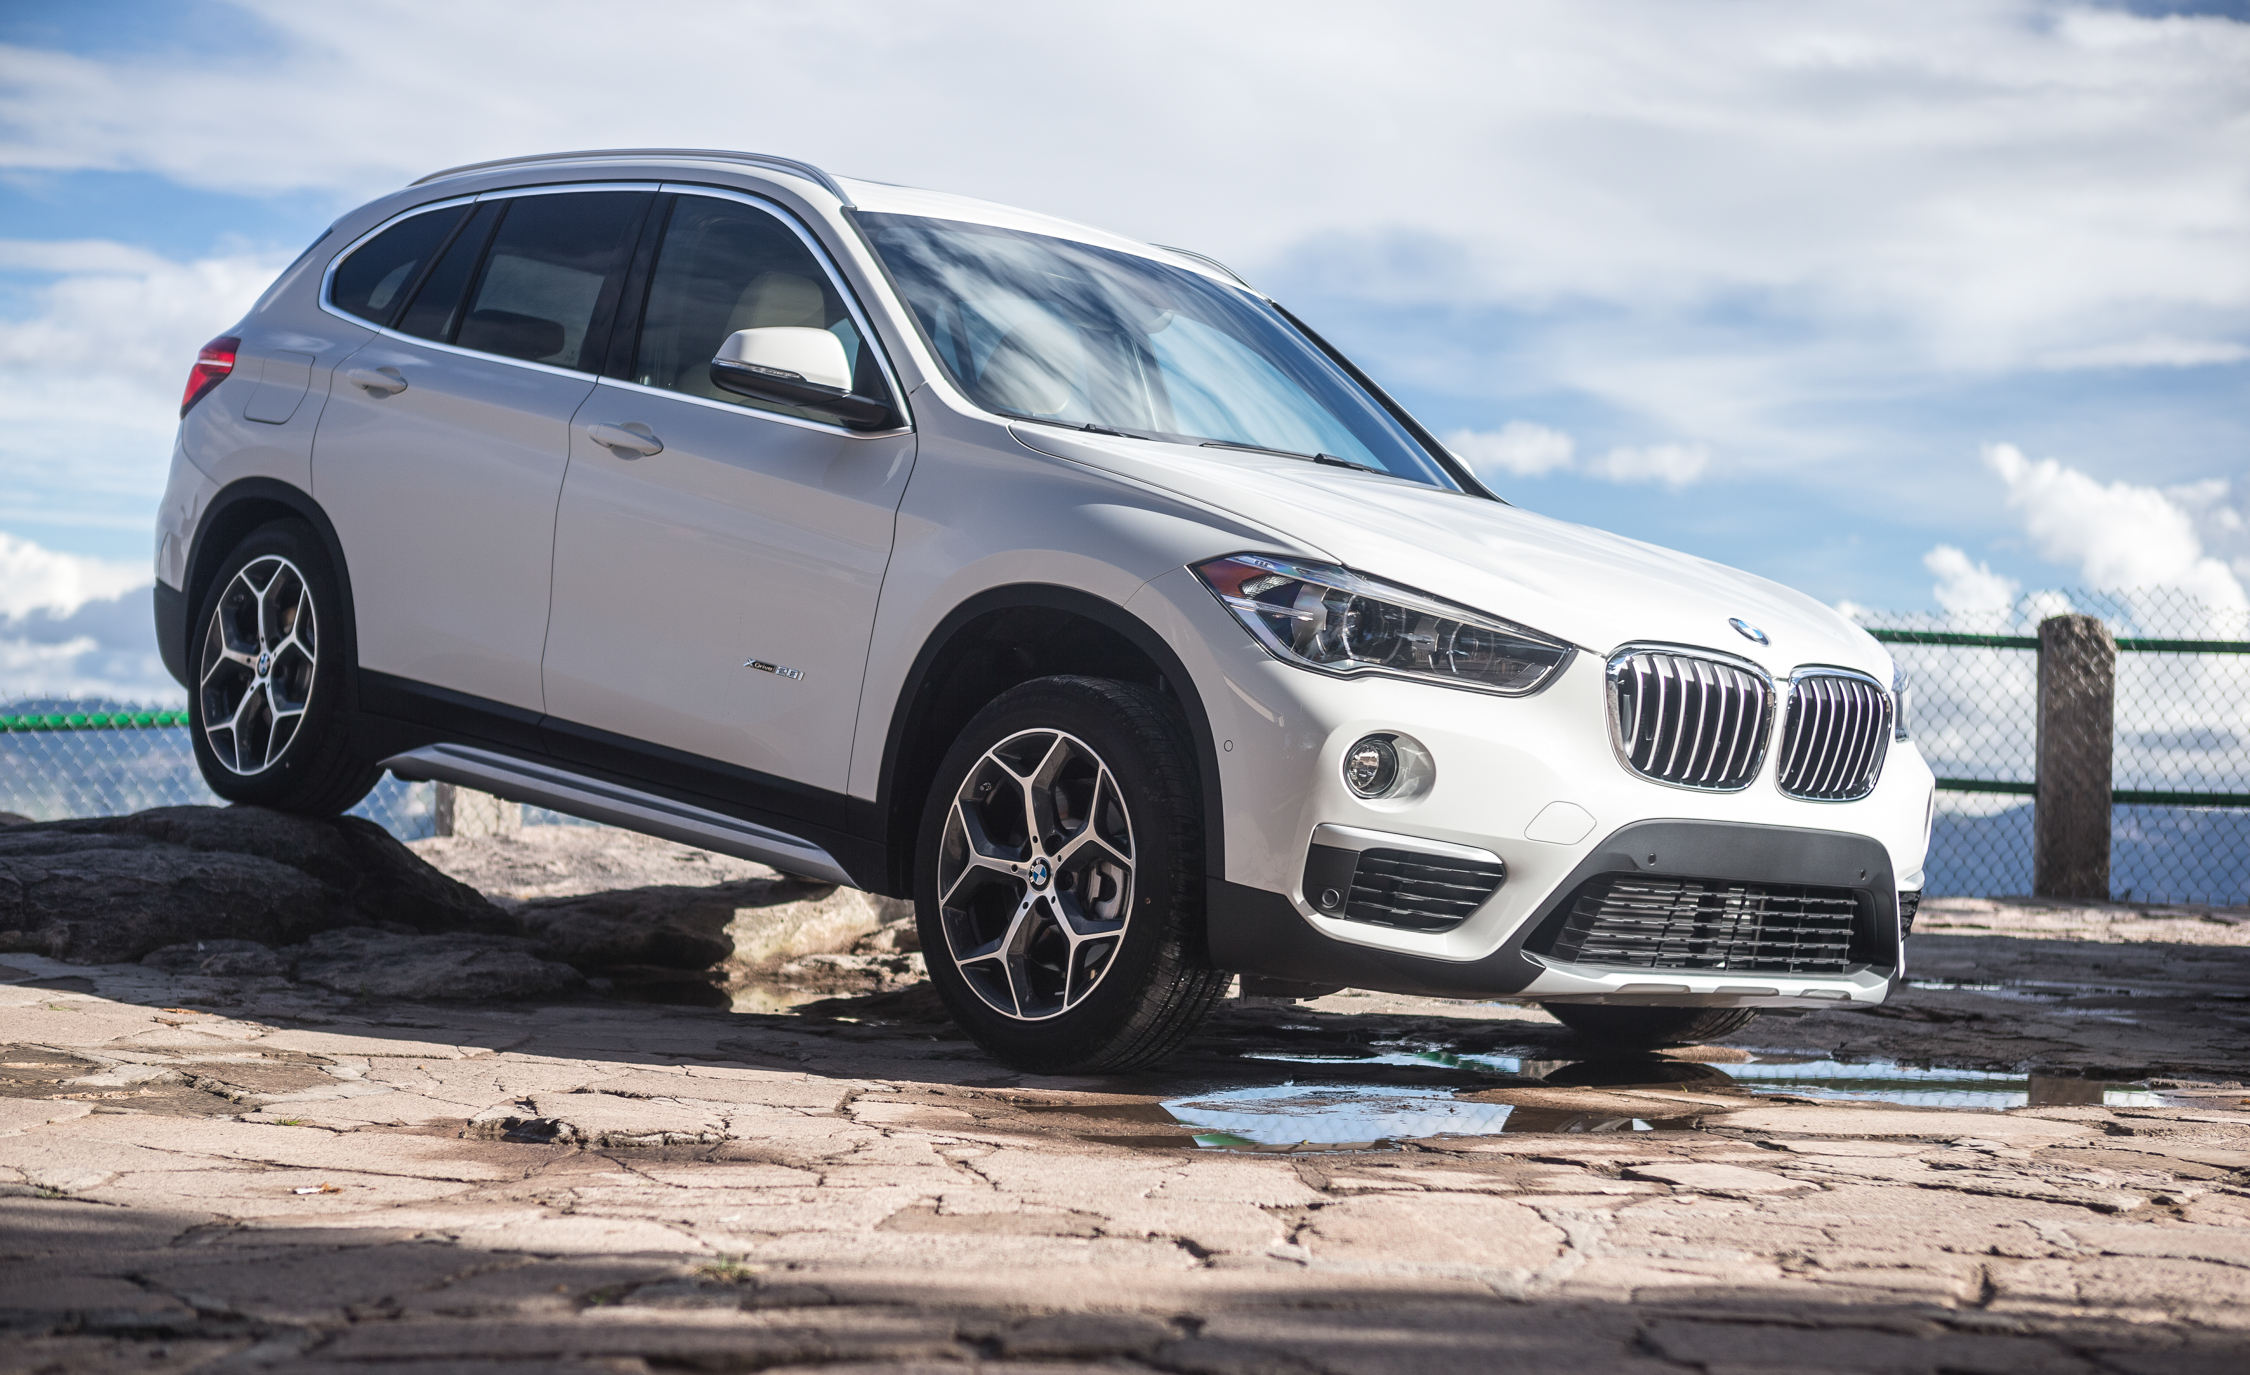 2016 BMW X1 Exterior White Metallic Front And Side (Photo 36 of 36)